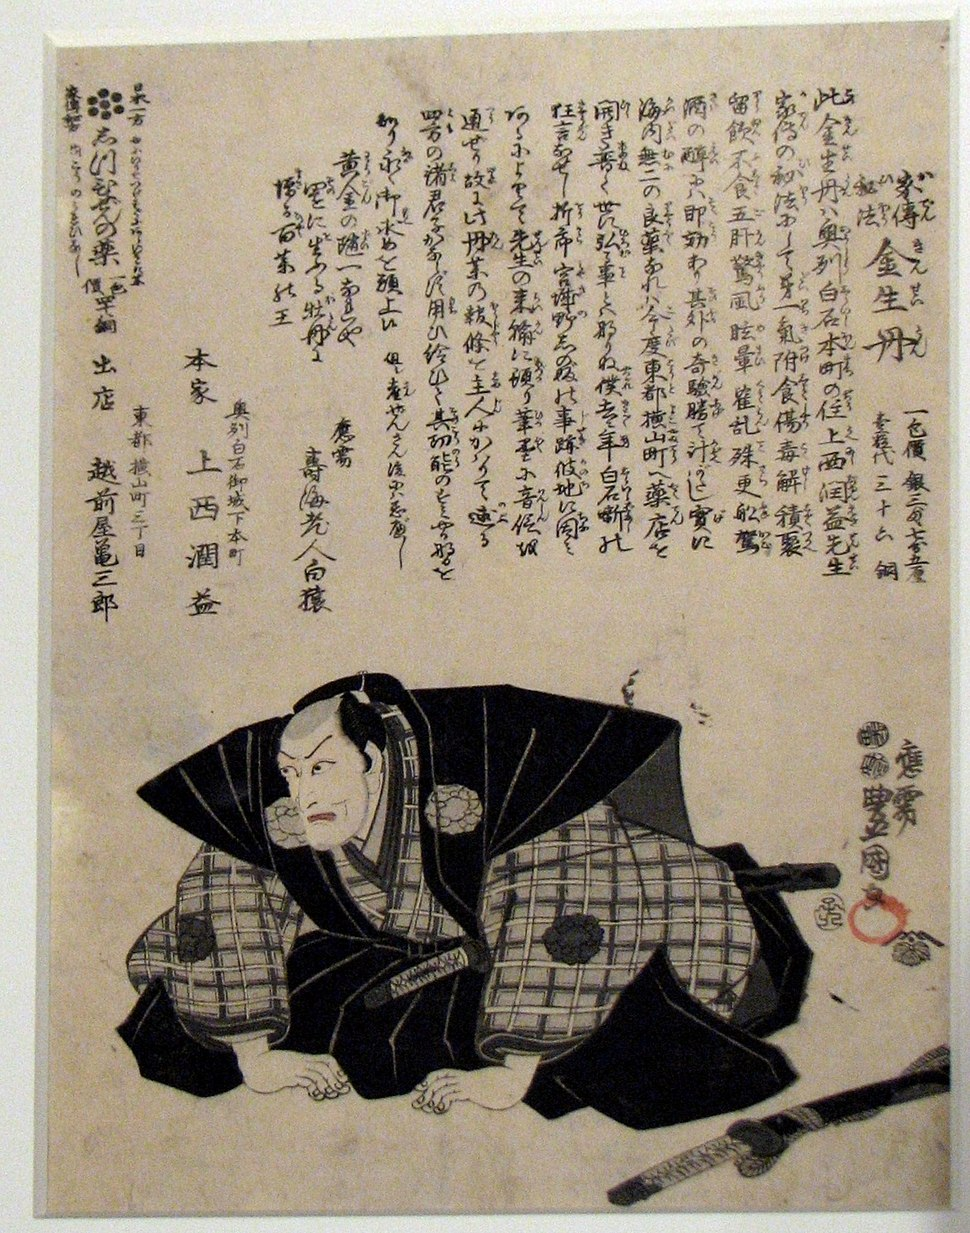 Edo period advertising in Japan